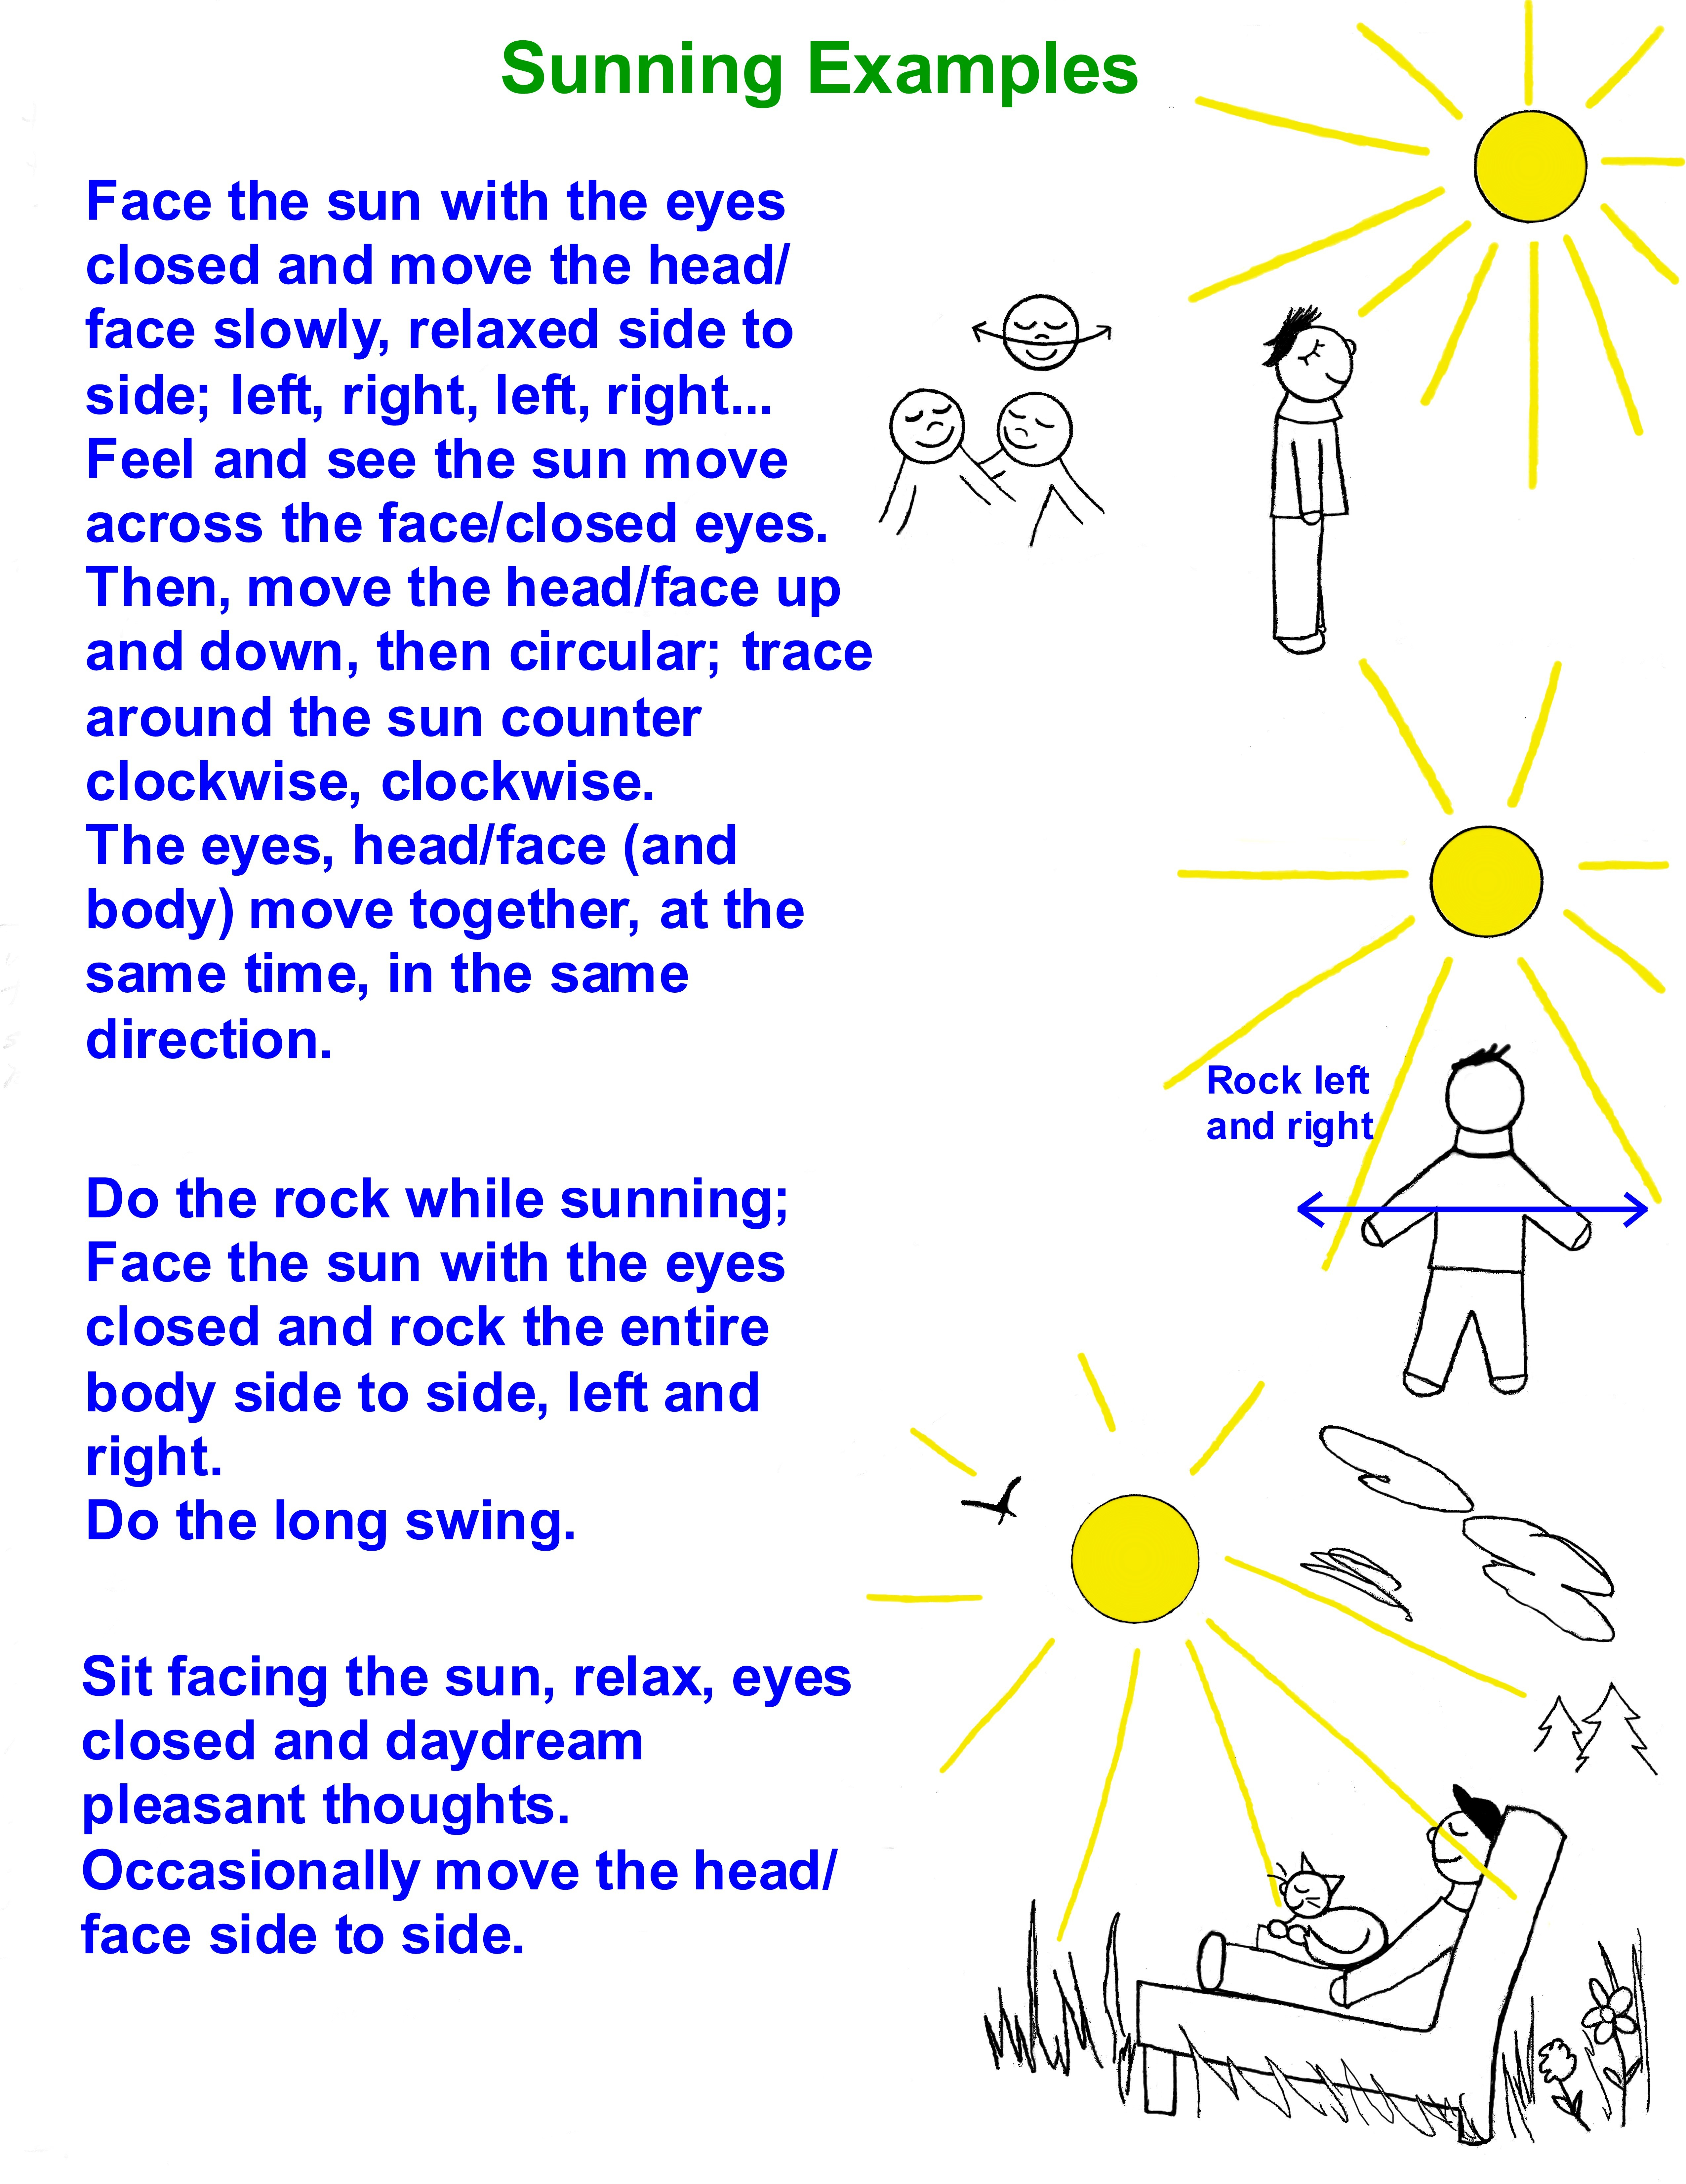 Sunning Examples